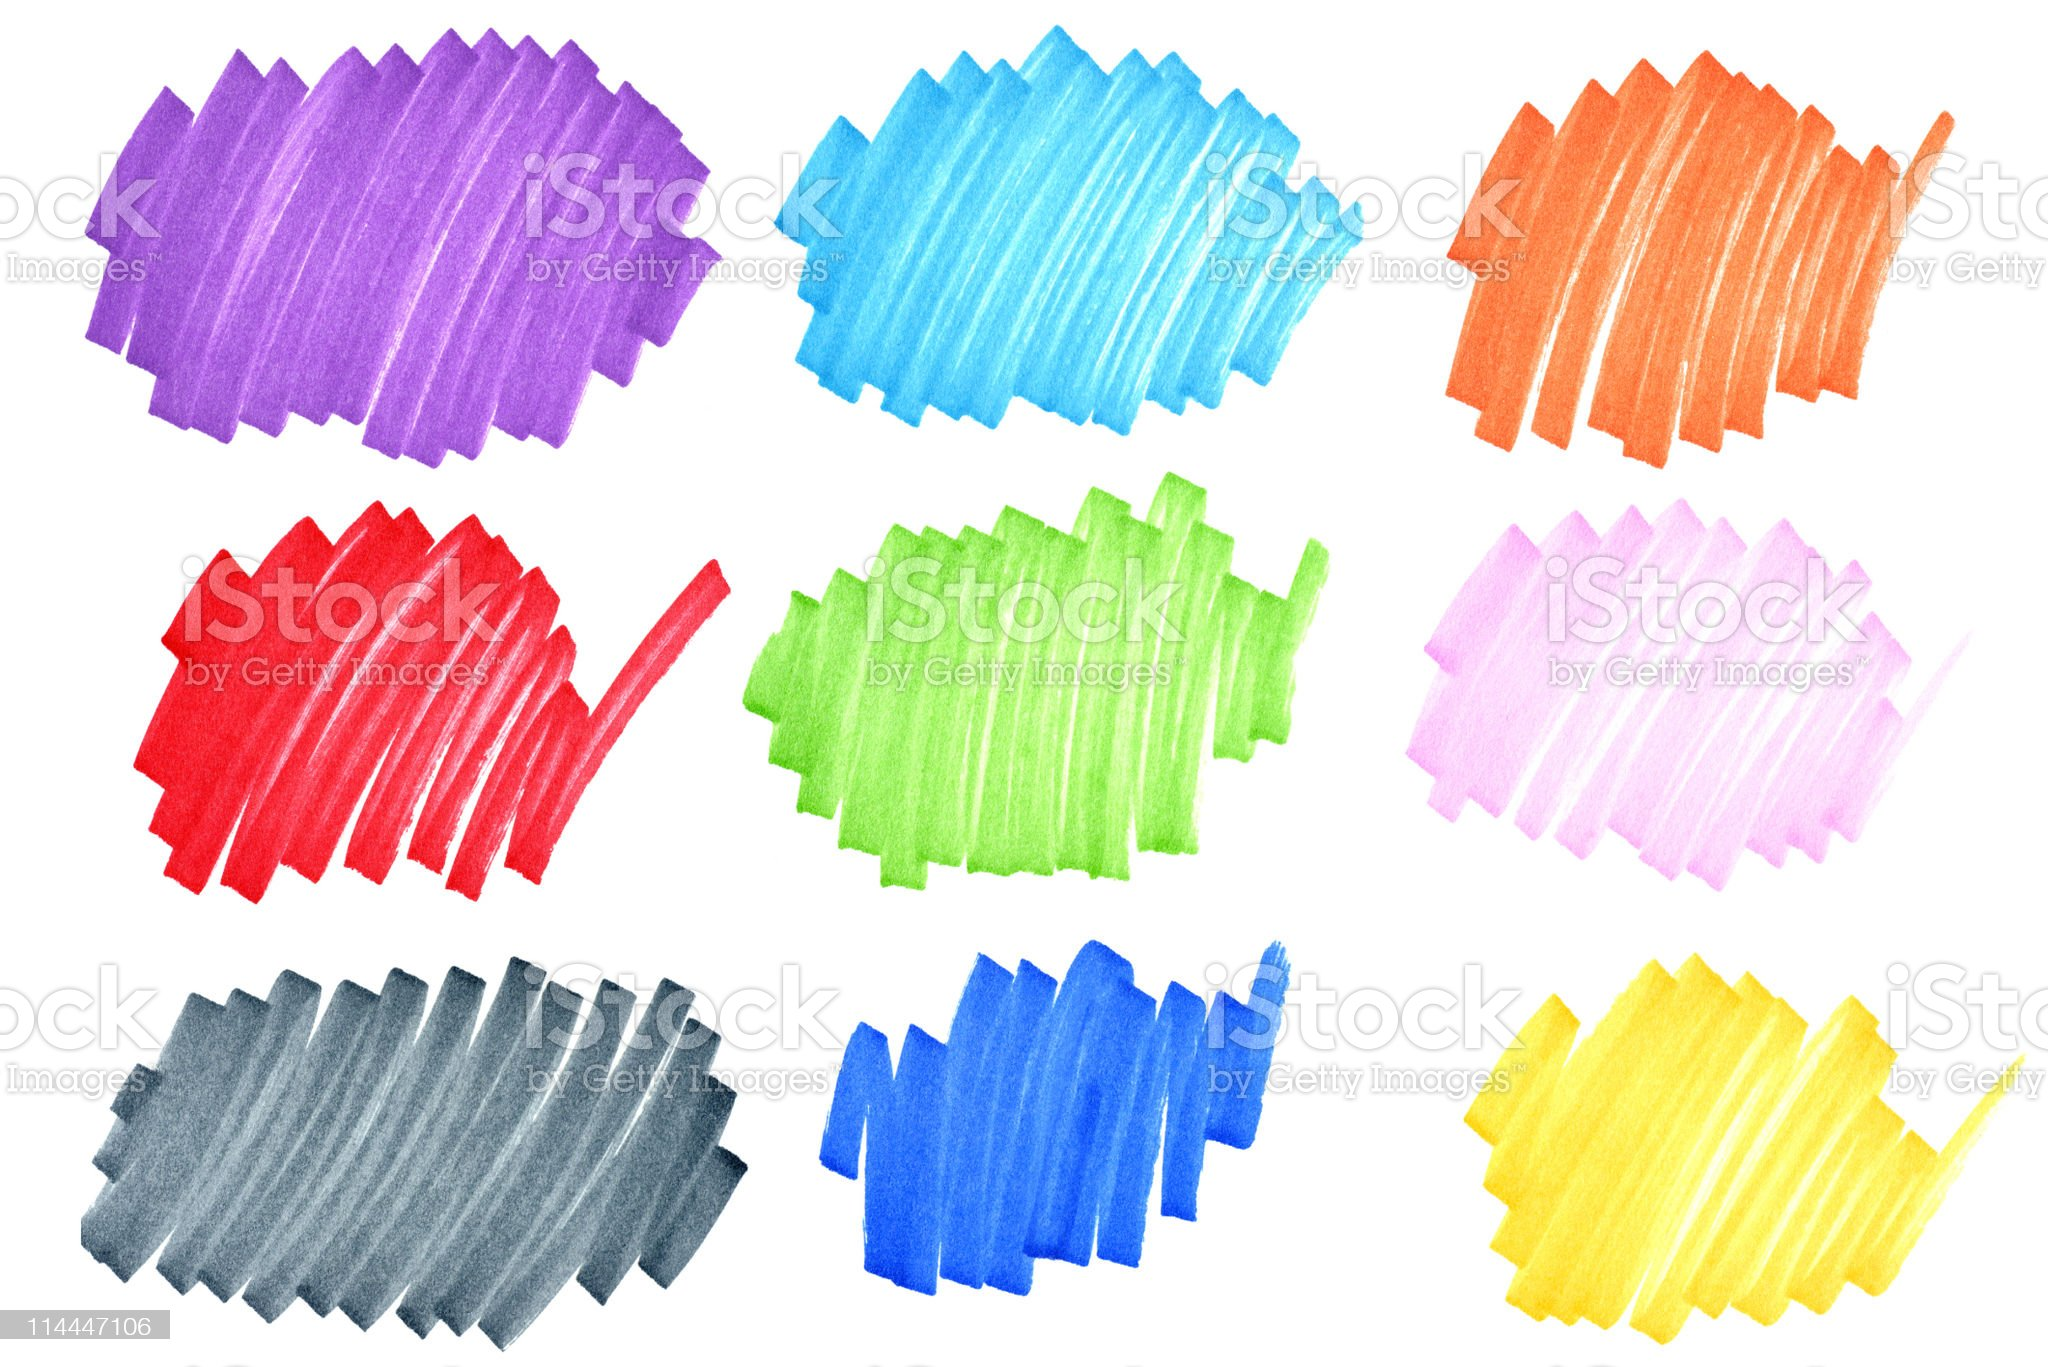 Colorful ink doodles royalty-free stock photo